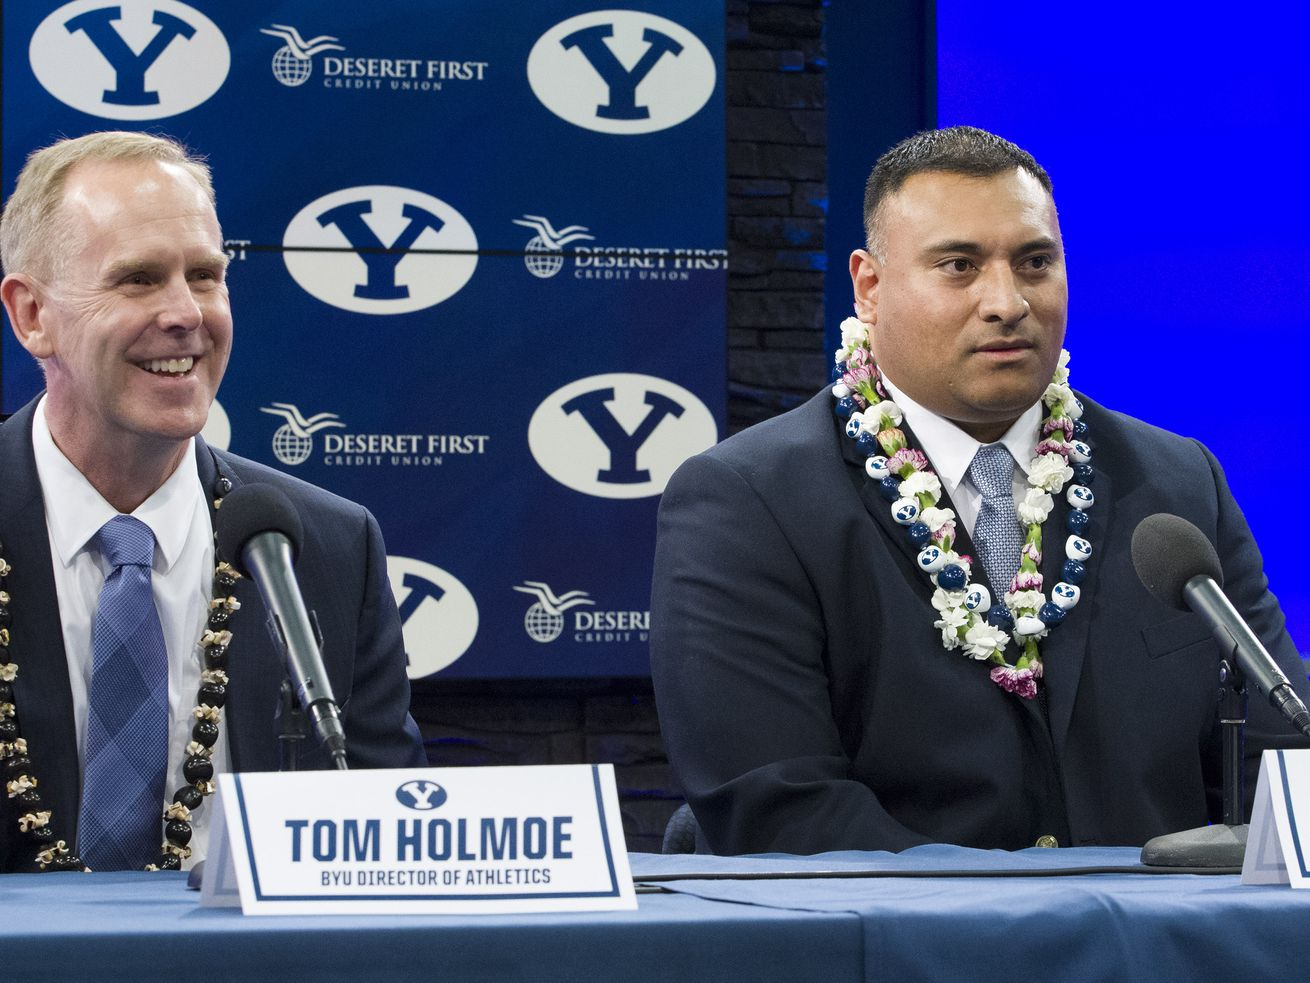 BYU AD Tom Holmoe and BYU football coach Kalani Sitake, shown here at a news conference on Dec. 21, 2015 when Sitake was named Bronco Mendenhall's successor, took to social media last week to talk about the status of the program in the midst of the COVID-19 pandemic.